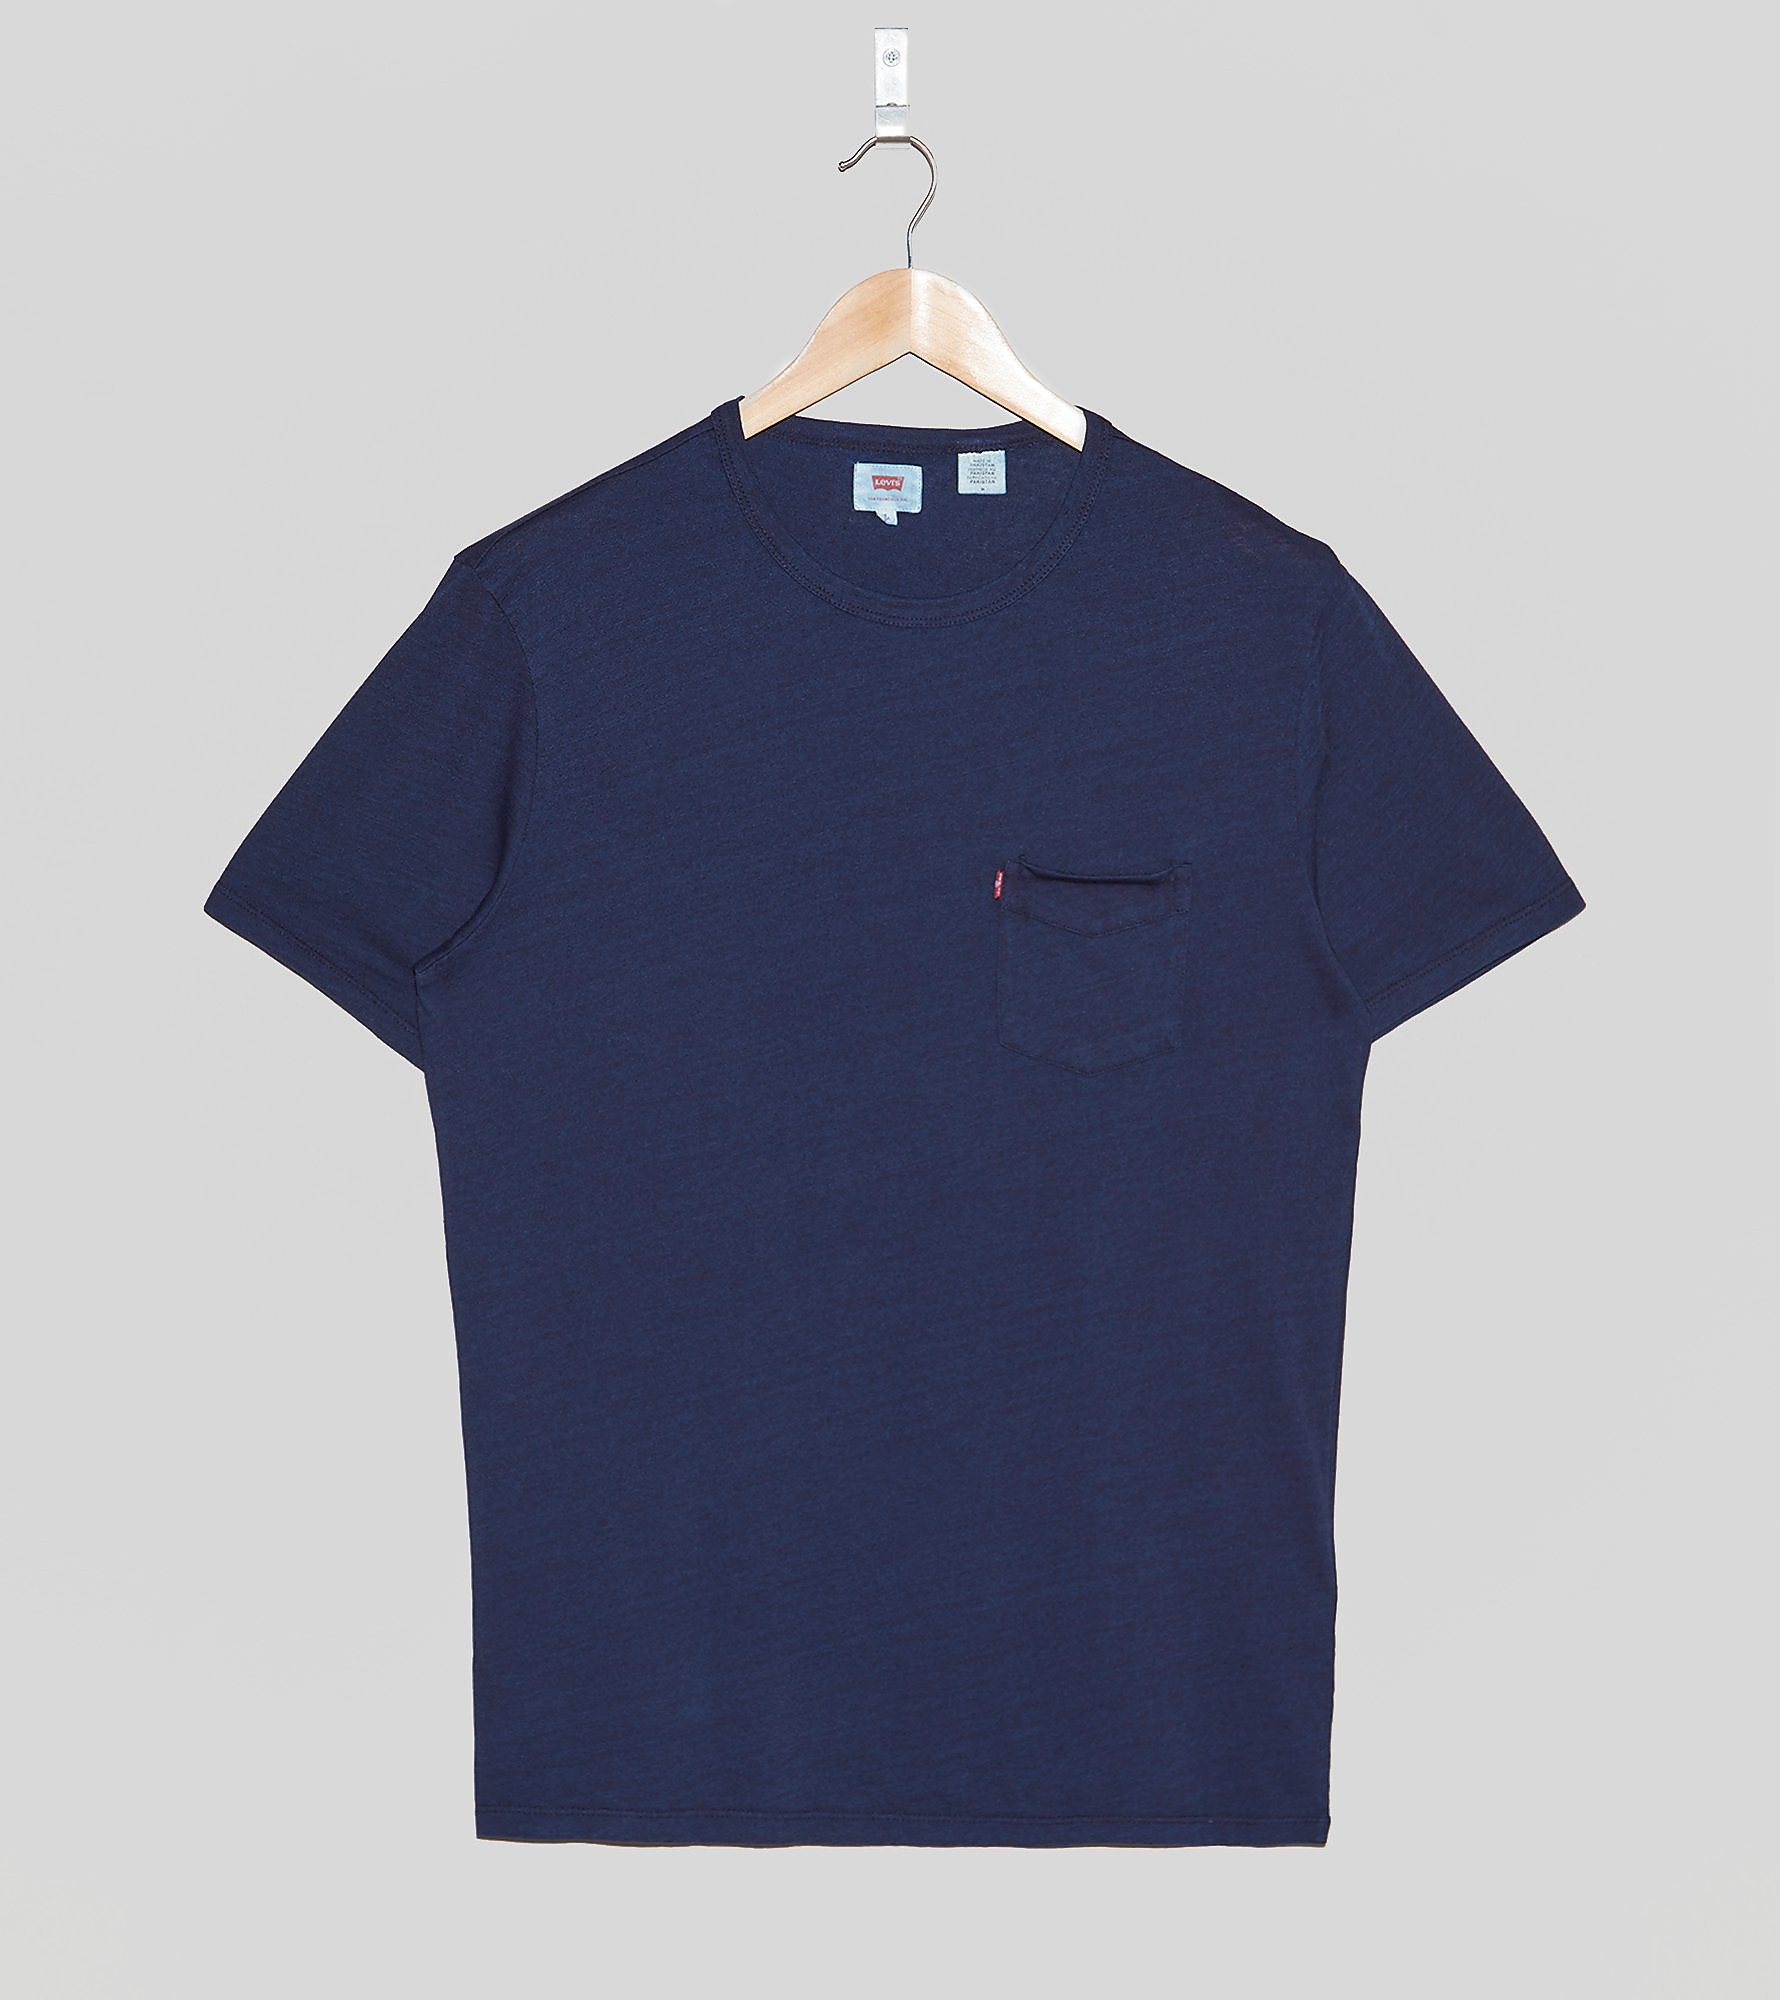 Levis Sunset Pocket T-Shirt